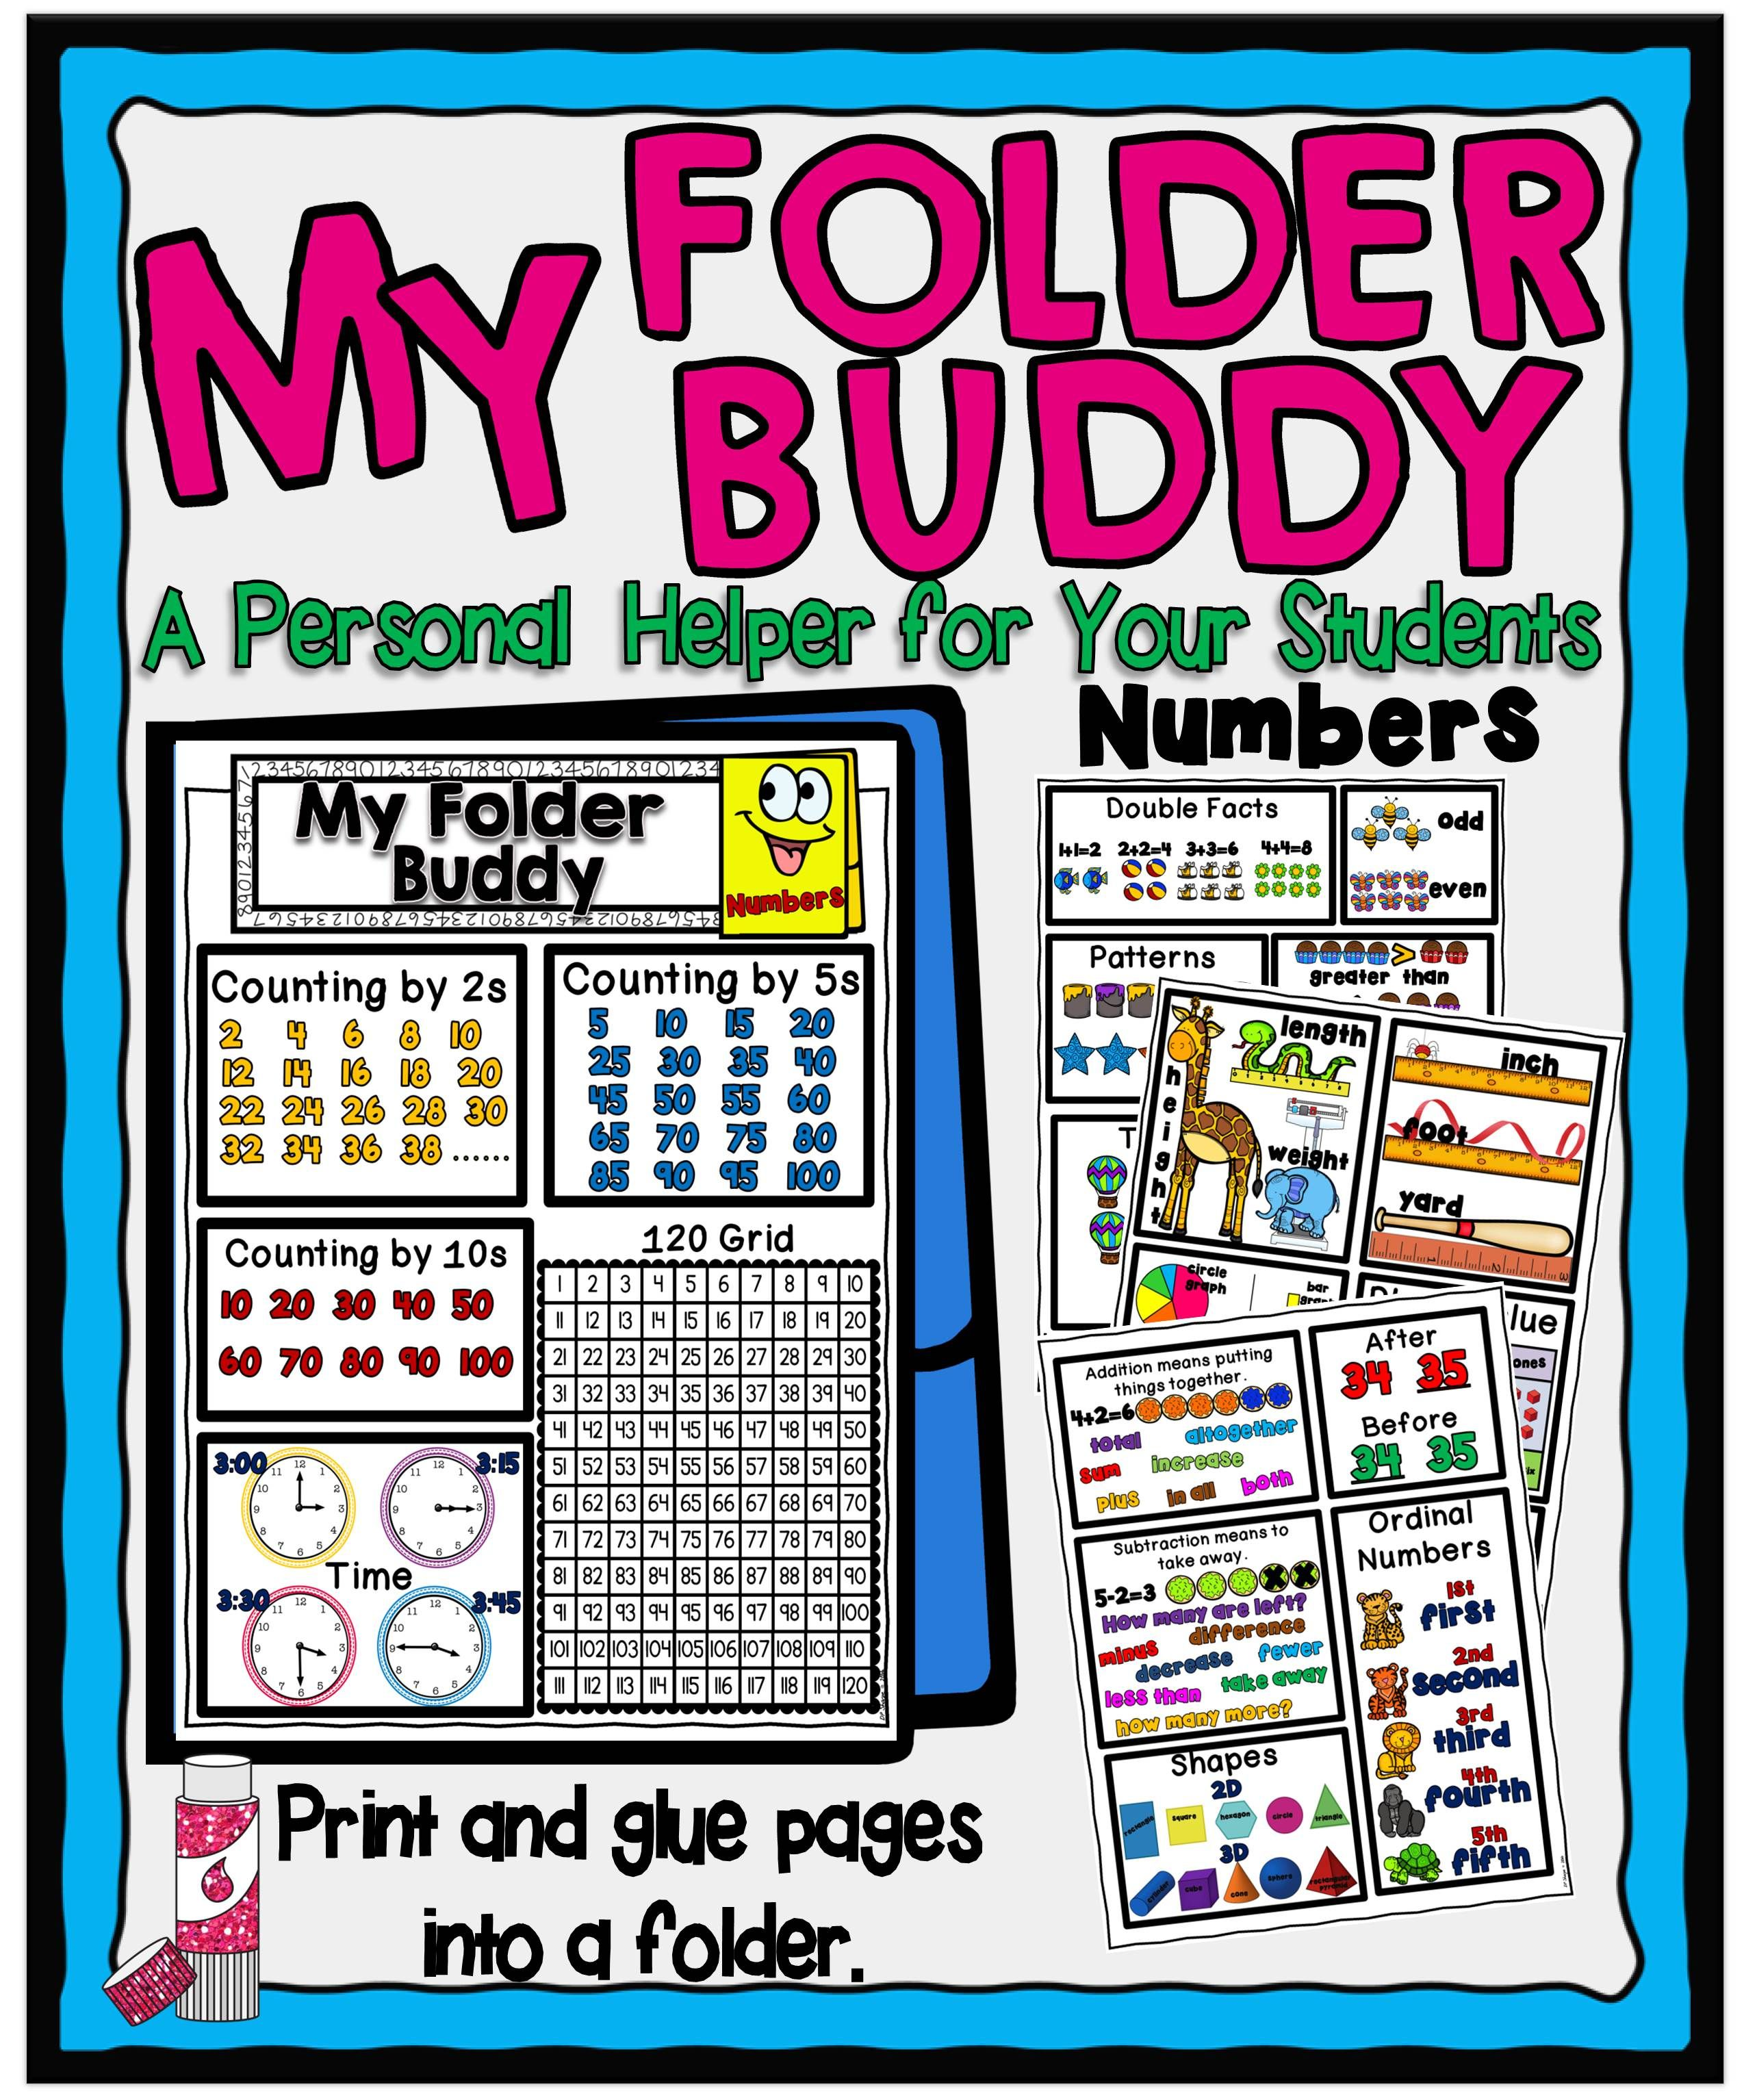 My Folder Buddy Is A Ready Helping Tool That Your Students